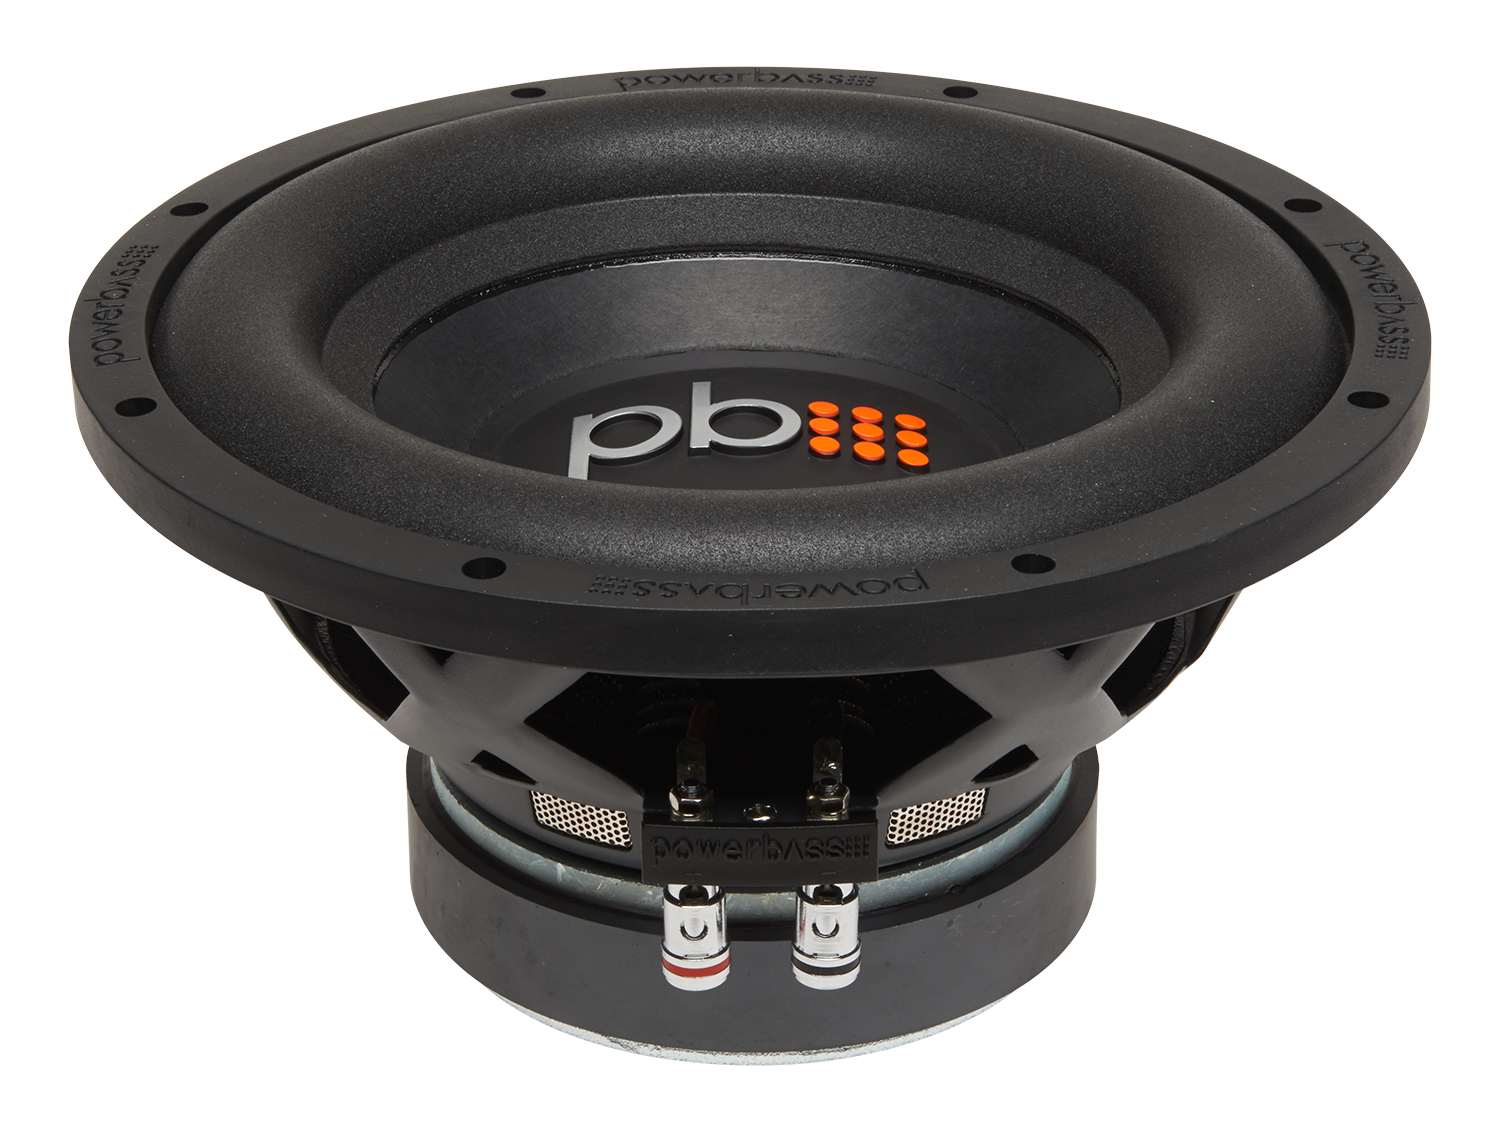 "Powerbass S-1004D S-Series 10"" Dual 4-Ohm Subwoofer w/ Oversized Motor Structure"